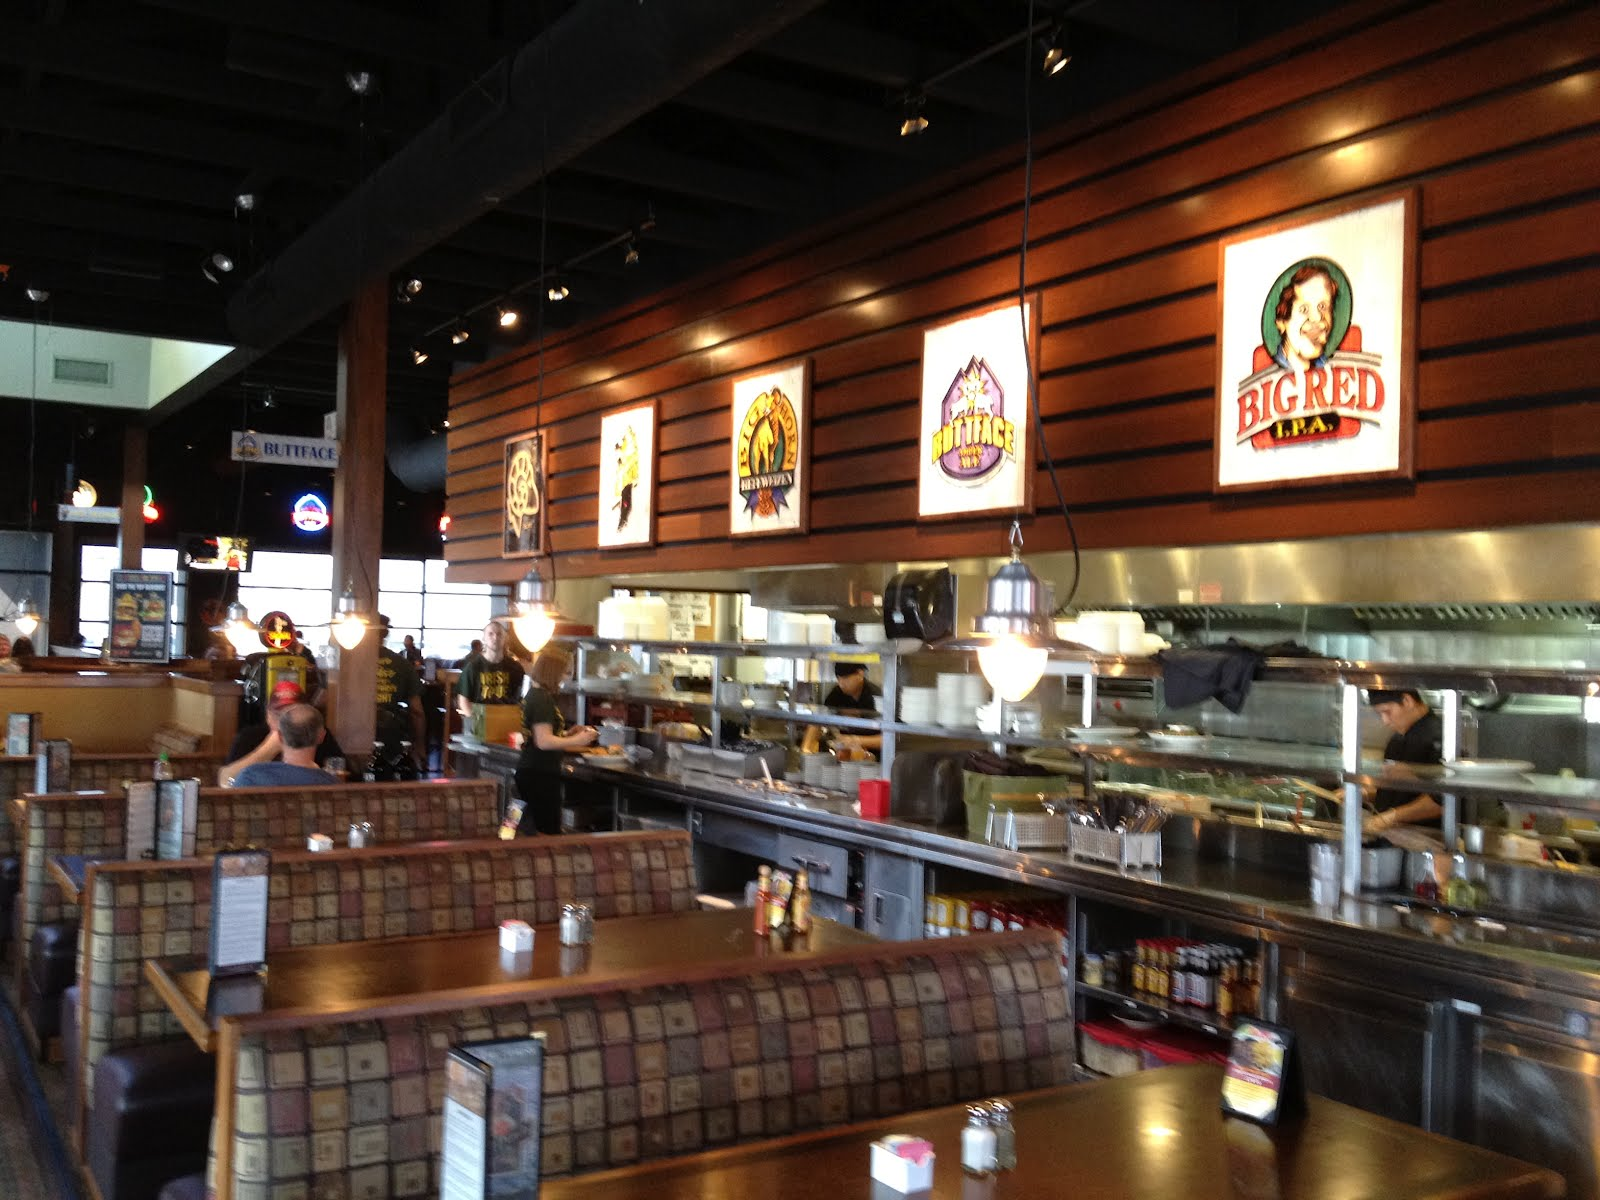 PIG OUT SPOTS The Ram Restaurant & Brewery Fishers IN